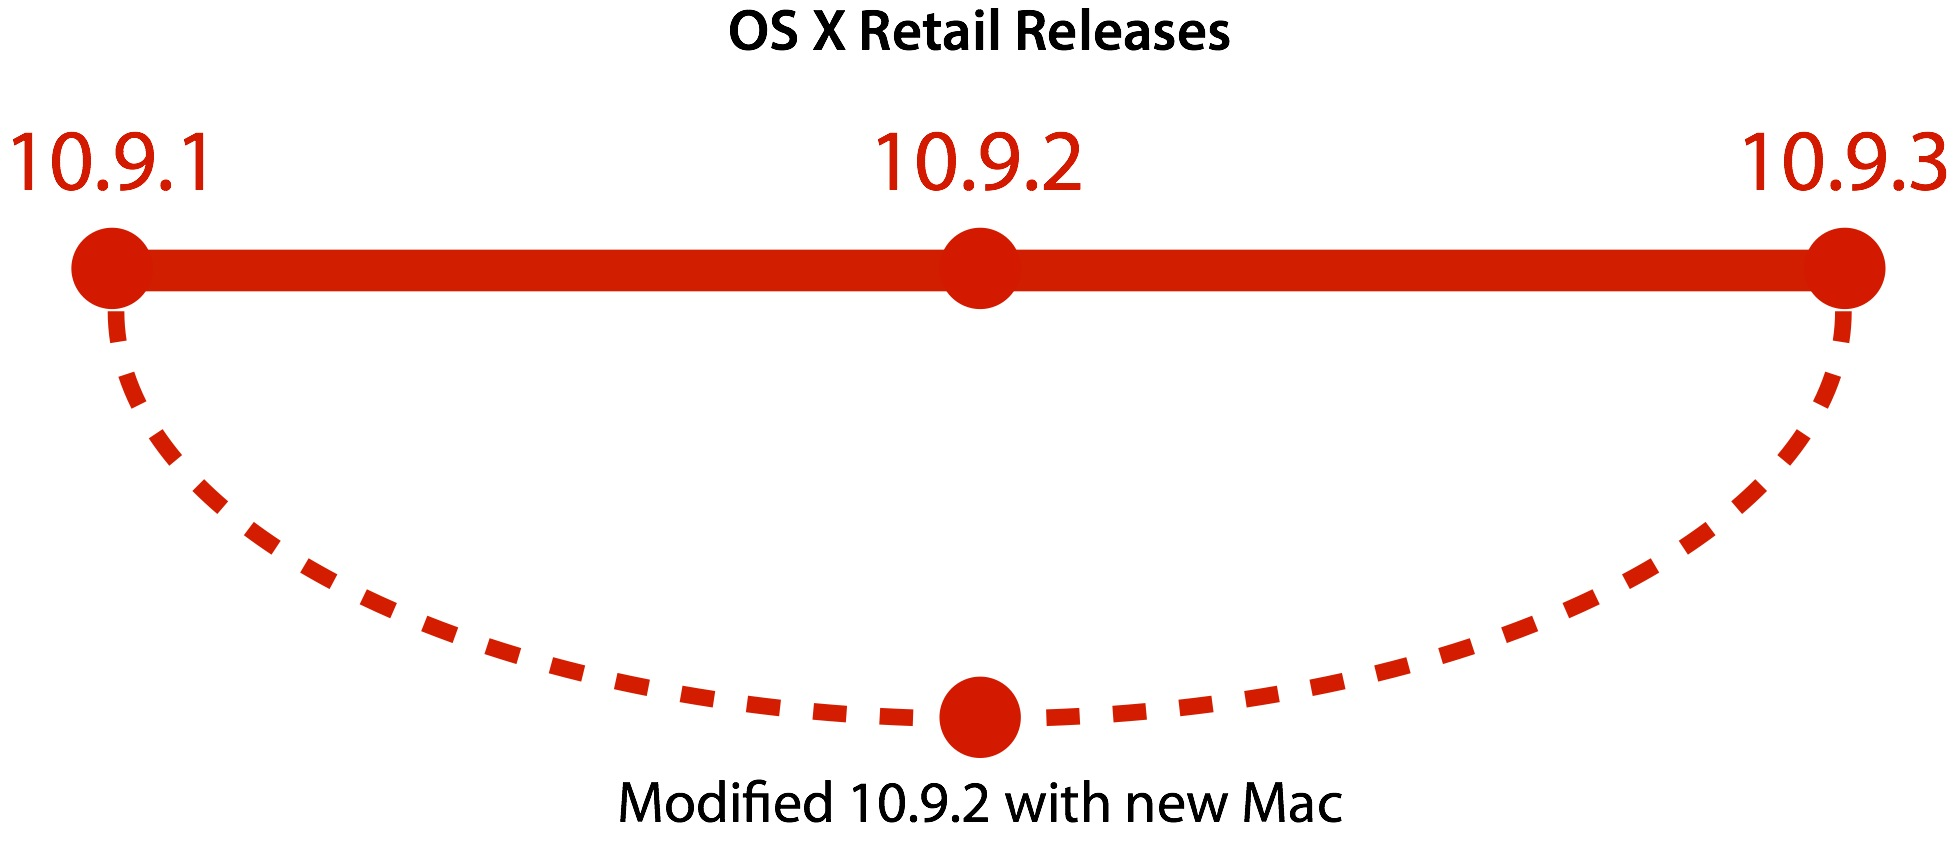 Once OS X is forked, its pretty much unique to that model of Mac until the next incremental update